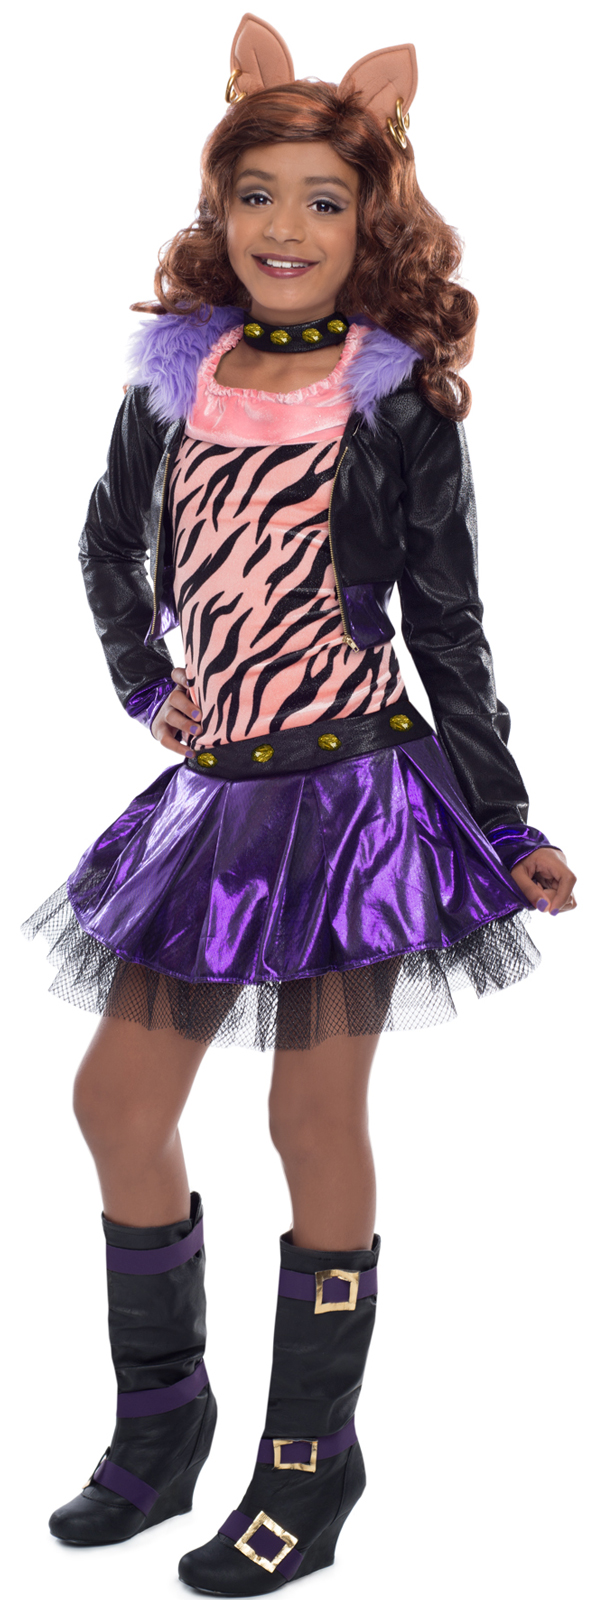 Monster High Ebay >> Monster High Clawd Wolf Costume | www.pixshark.com - Images Galleries With A Bite!